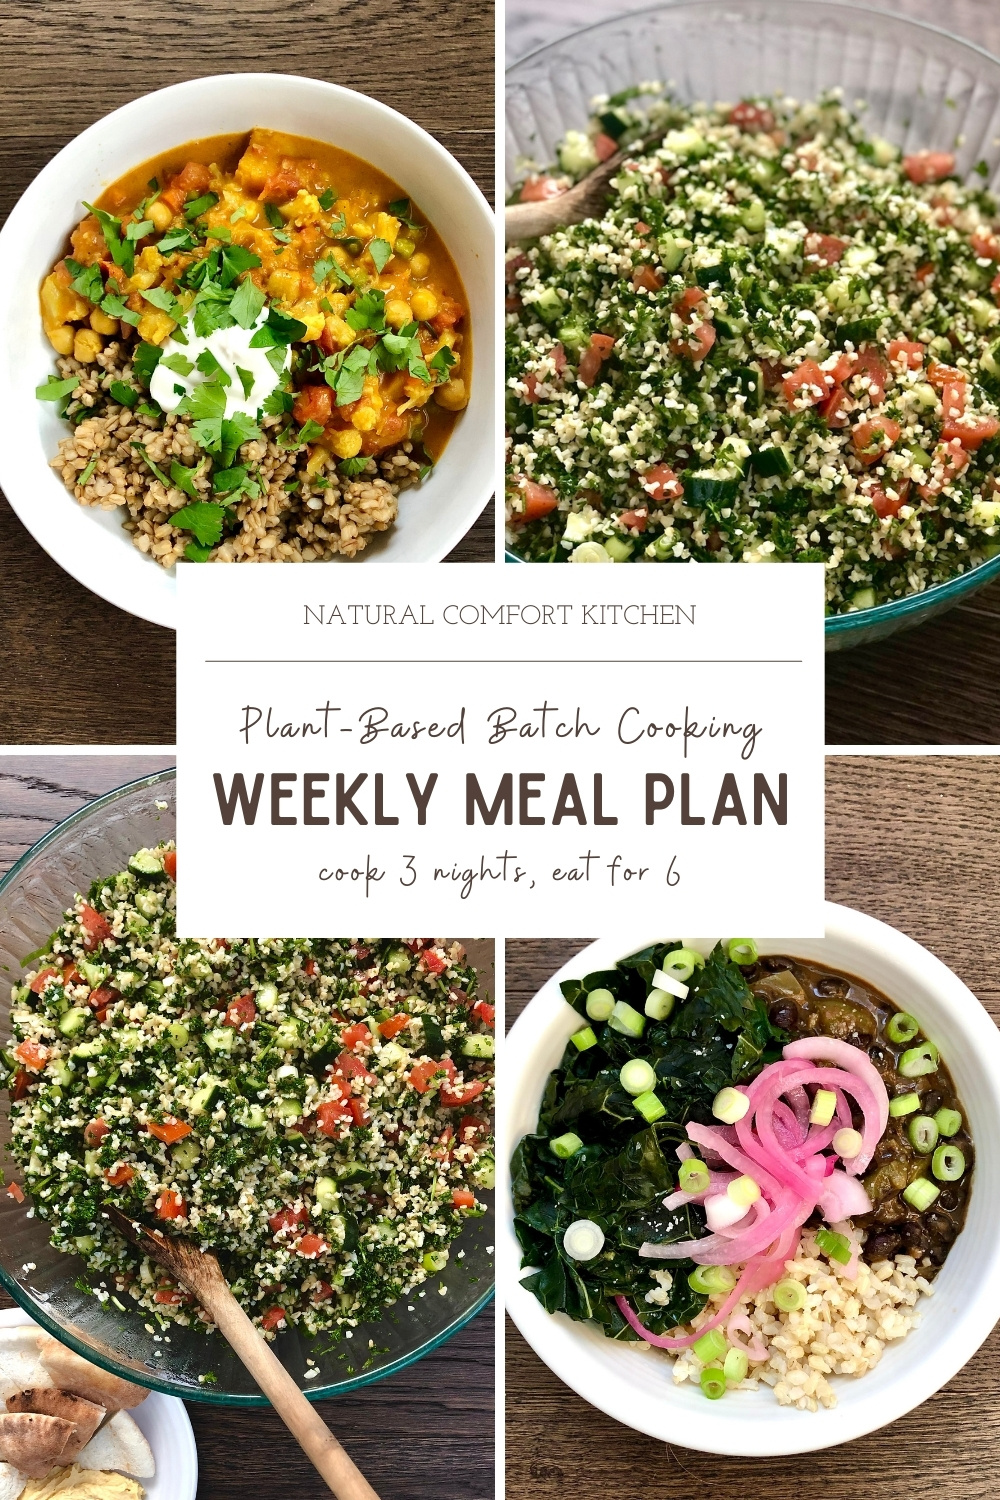 FREE plant-based, batch cooking weekly meal plan to cook for 3 nights and eat for 6. Download it now at naturalcomfortkitchen.com and (effortlessly) go vegan for a week!